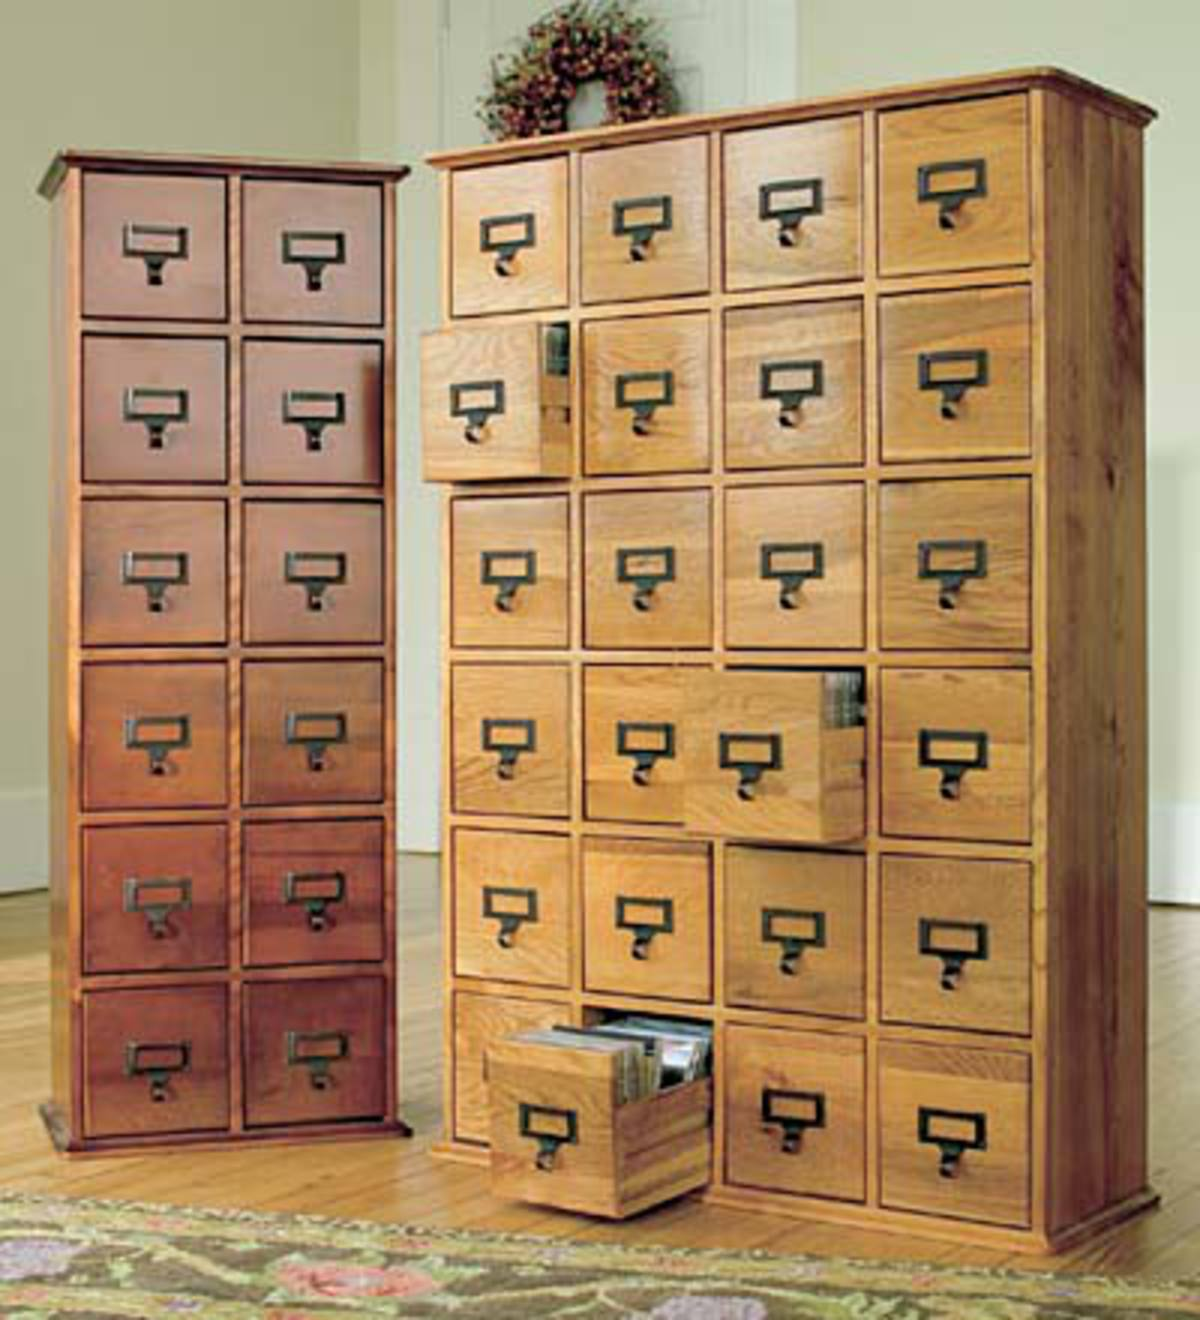 Retro Style Wooden Multimedia Library File Cabinets